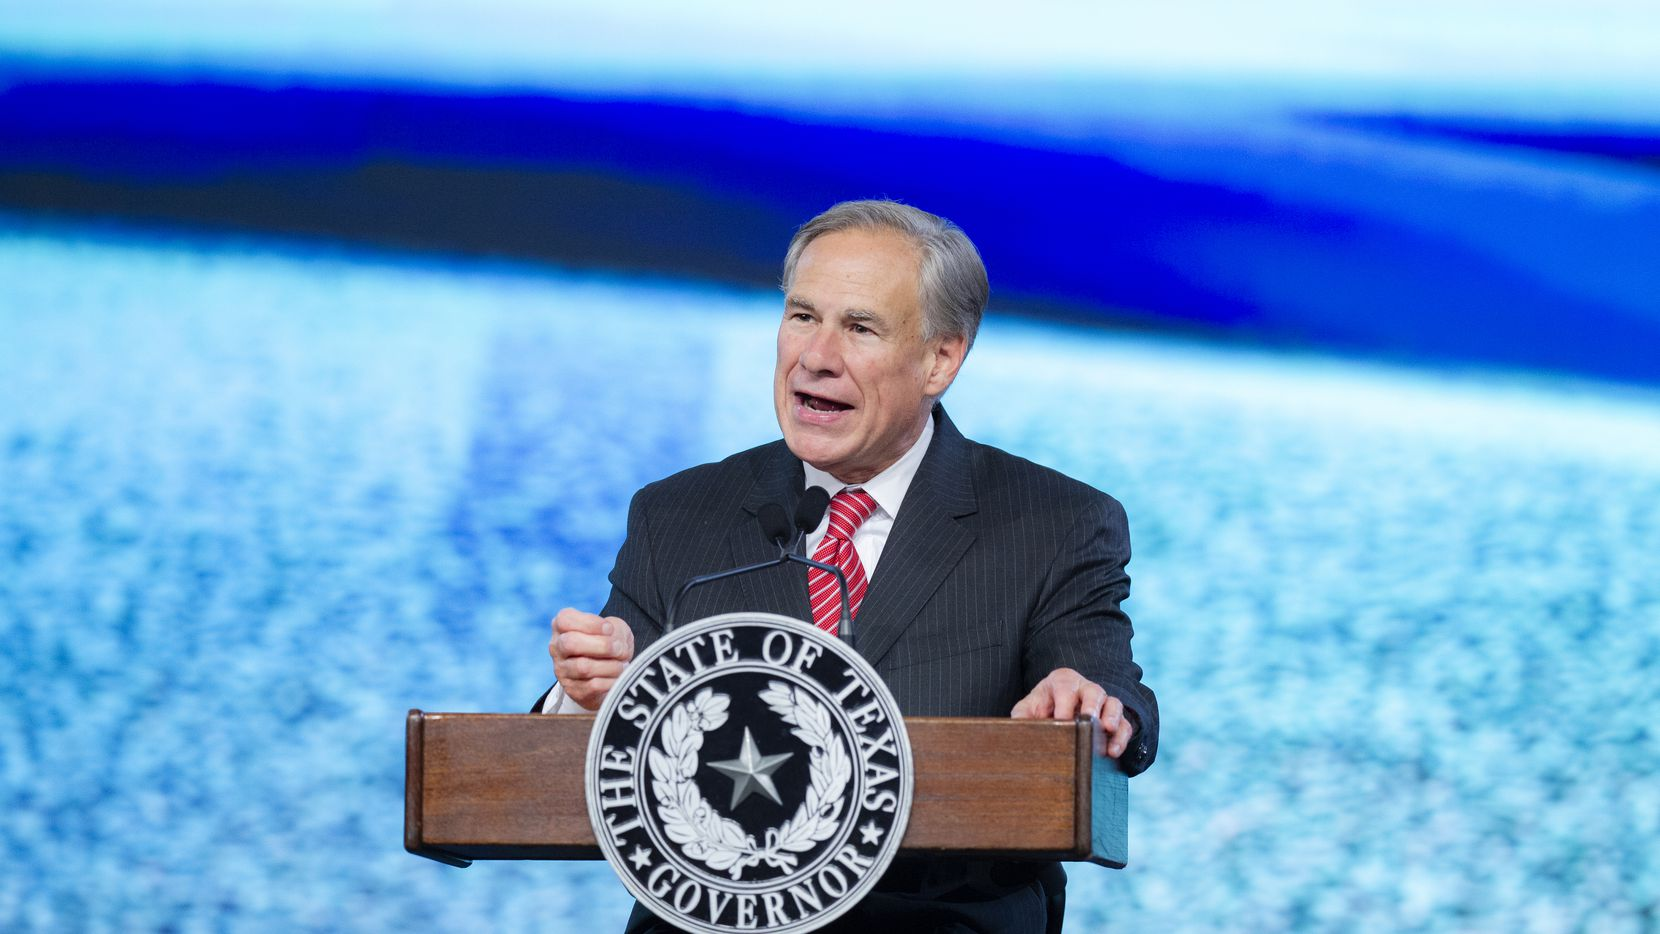 Texas Gov. Greg Abbott, who has received Regeneron's monoclonal antibody treatment to help him fight COVID-19, said Saturday that he is wants to see antibody infusion centers opened across the state.